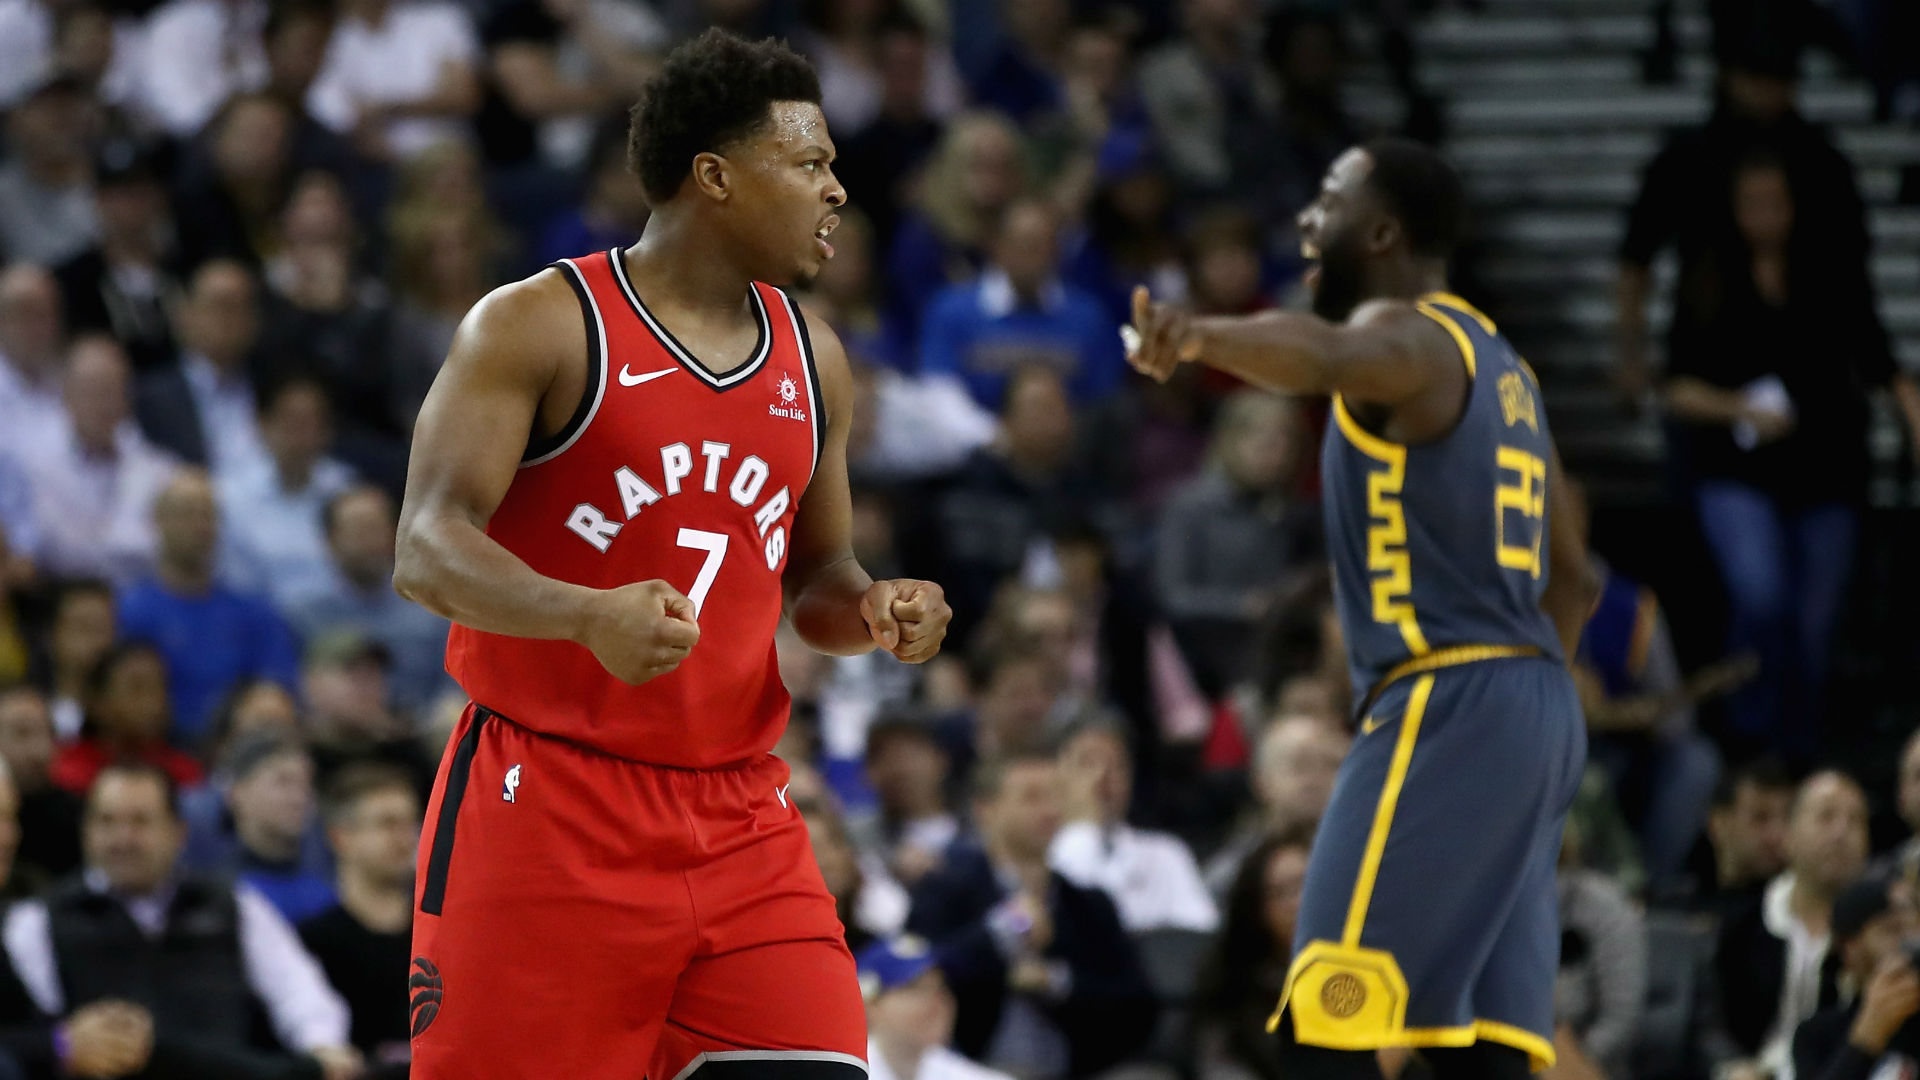 Raptors toothless in Lowry's absence, Basketball News & Top Stories